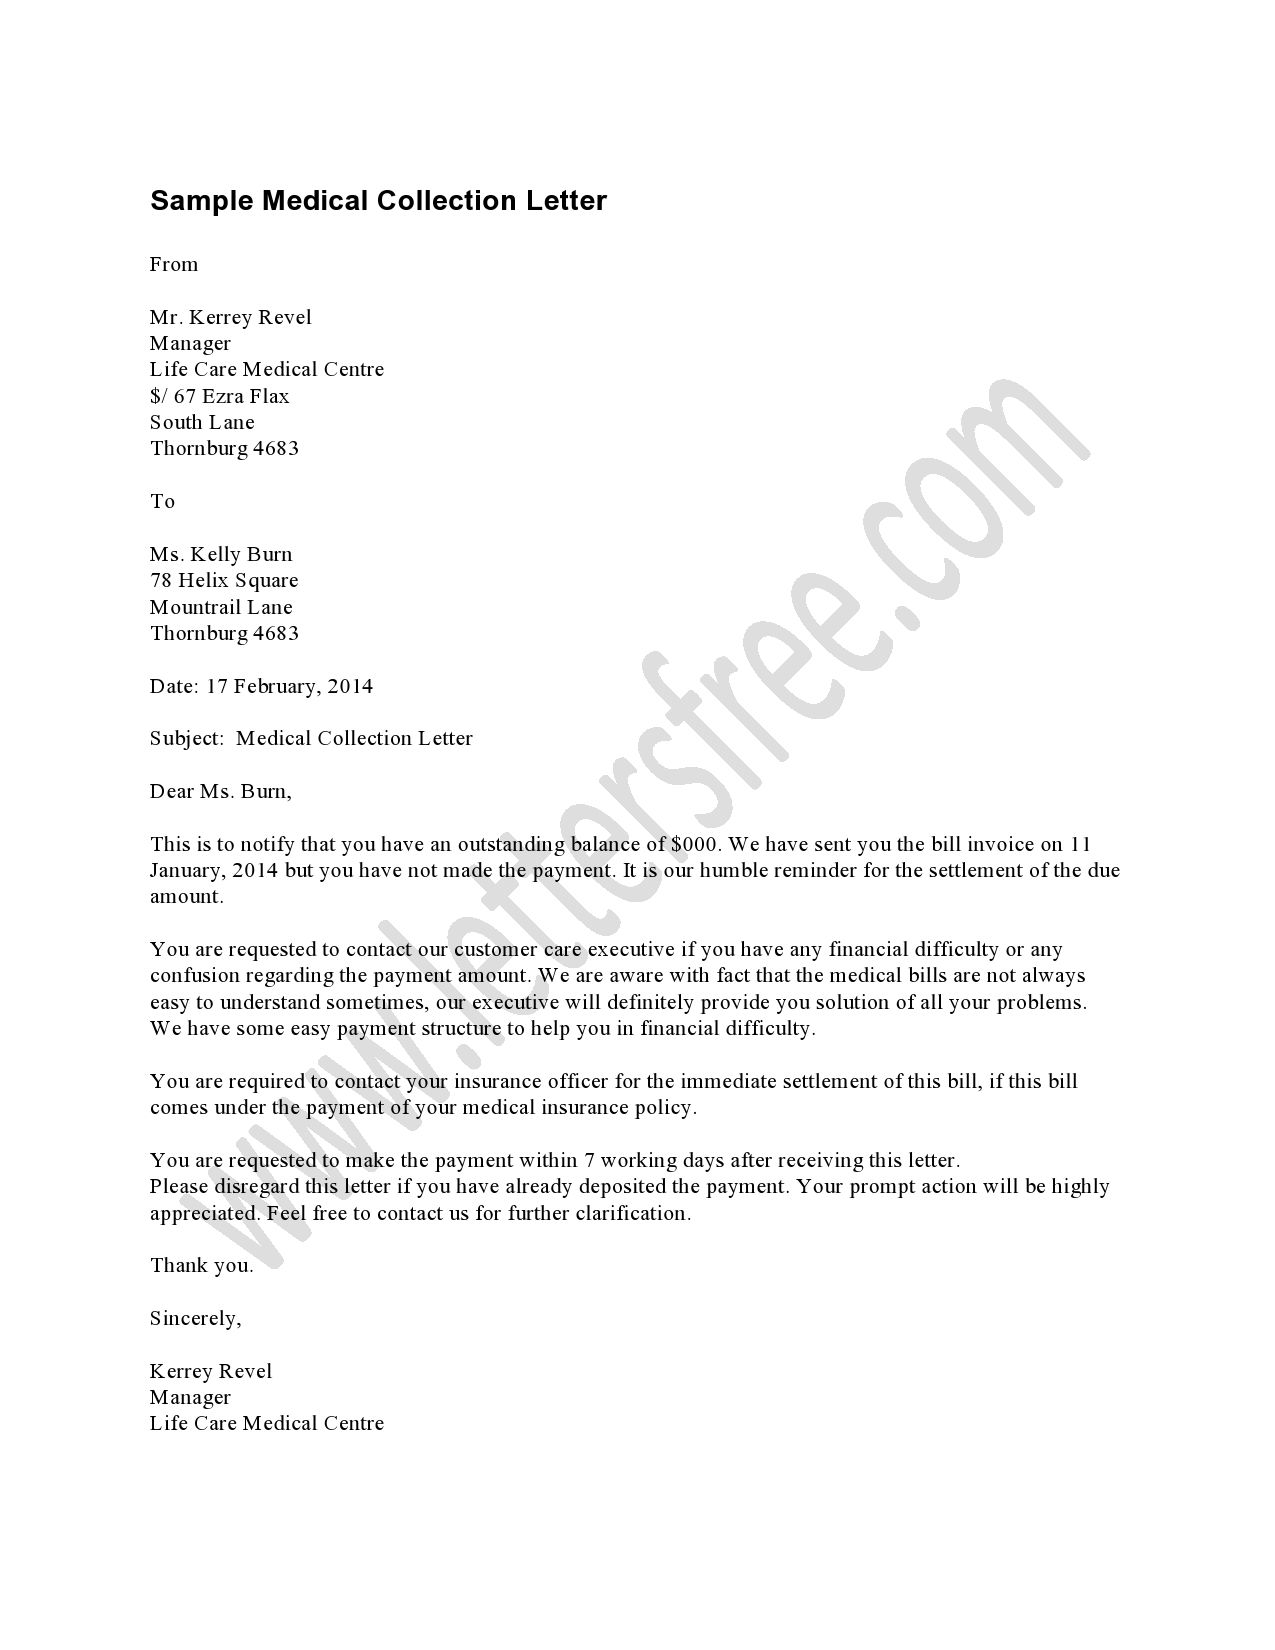 Medical collection letter example should be used as a first reminder medical collection letter example should be used as a first reminder notice to gently remind your patients to pay or get in touch with your office to work spiritdancerdesigns Image collections